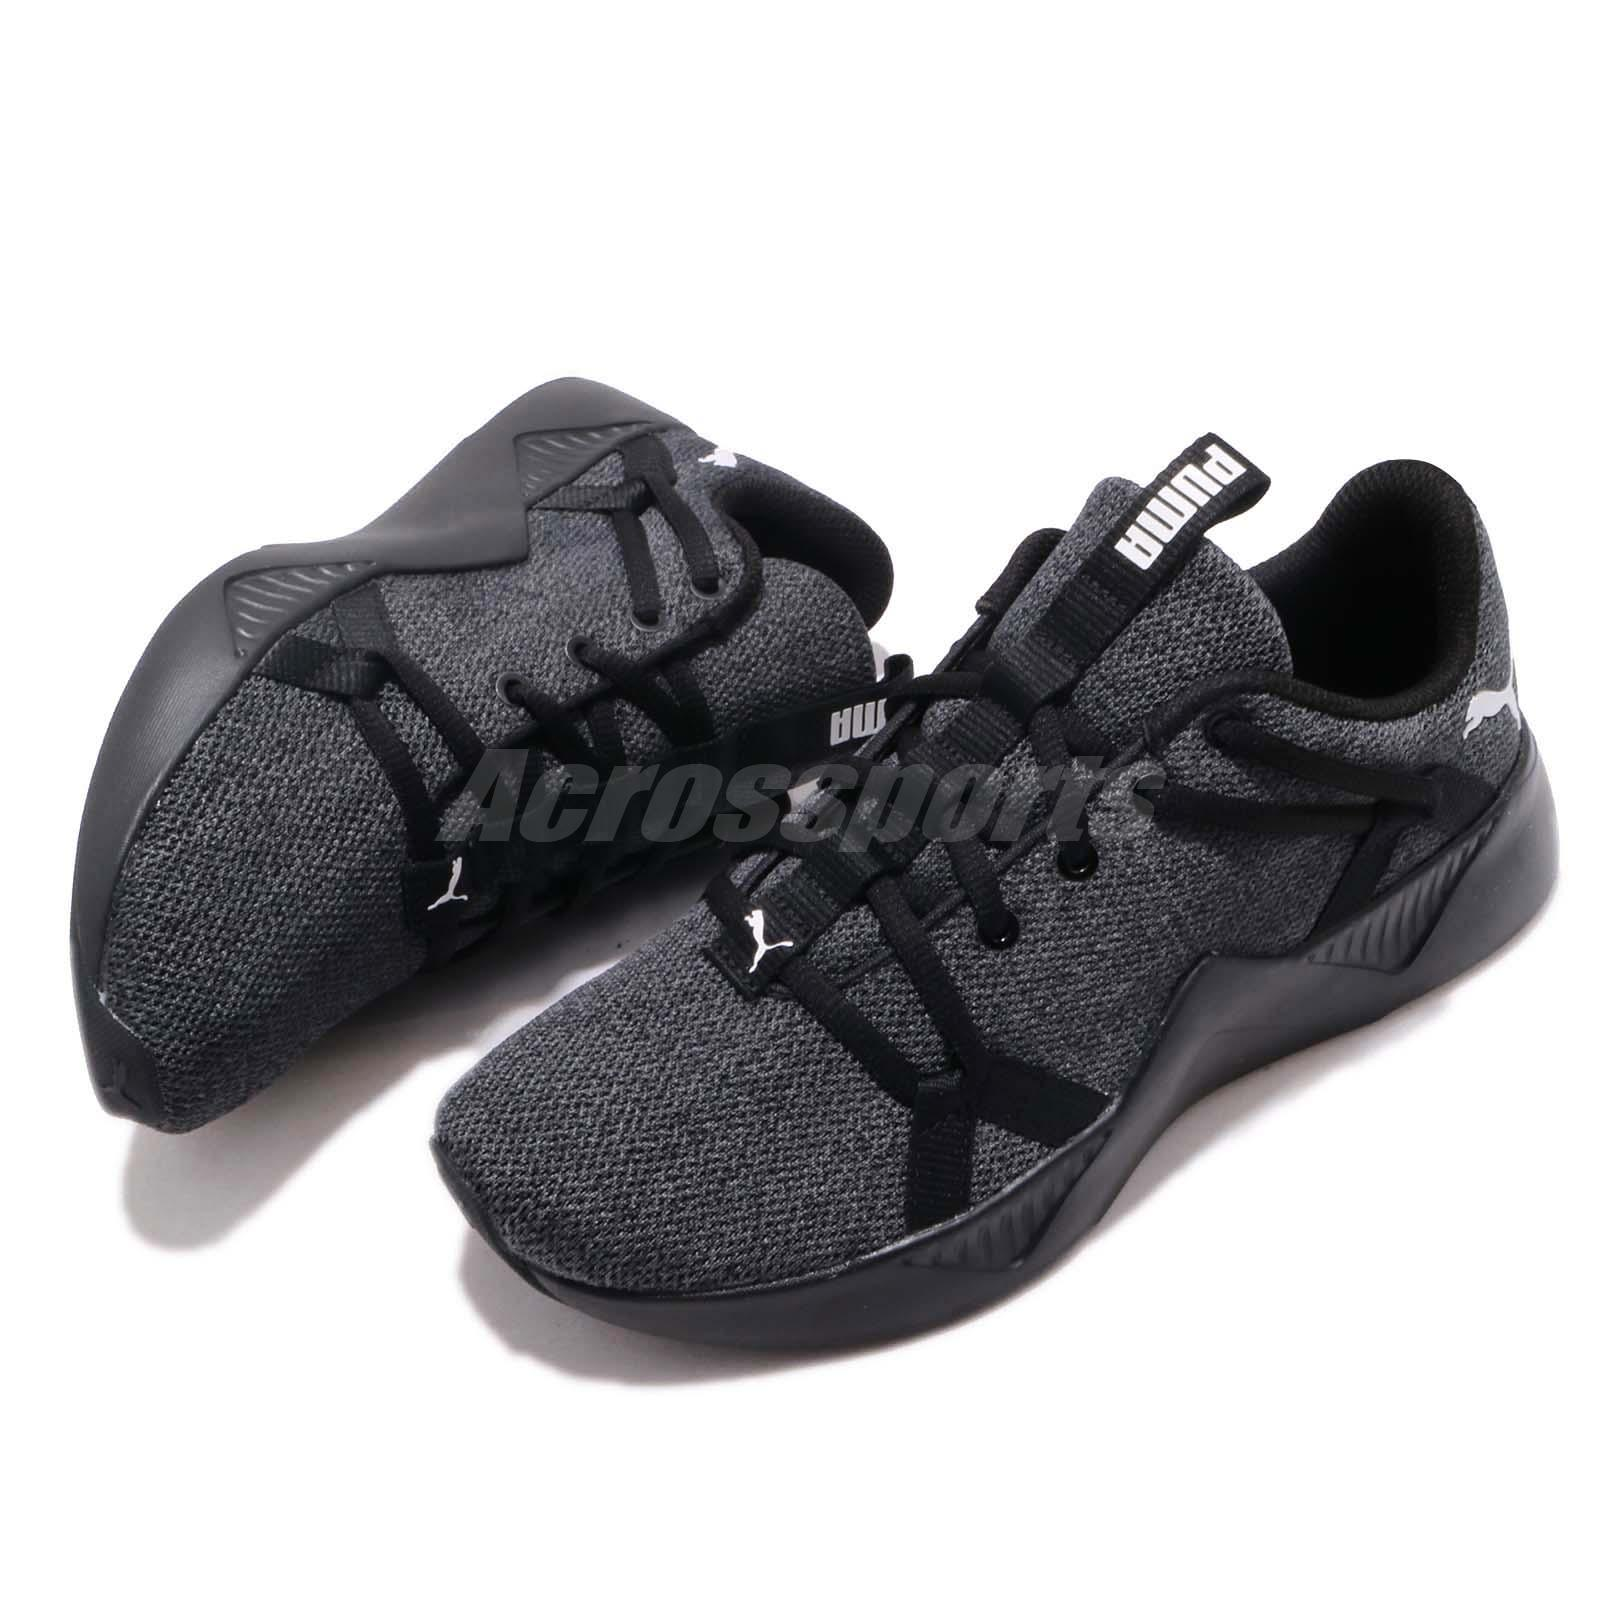 7c402d867bf Puma Incite Knit Wns Black White Women Running Casual Shoes Sneakers ...